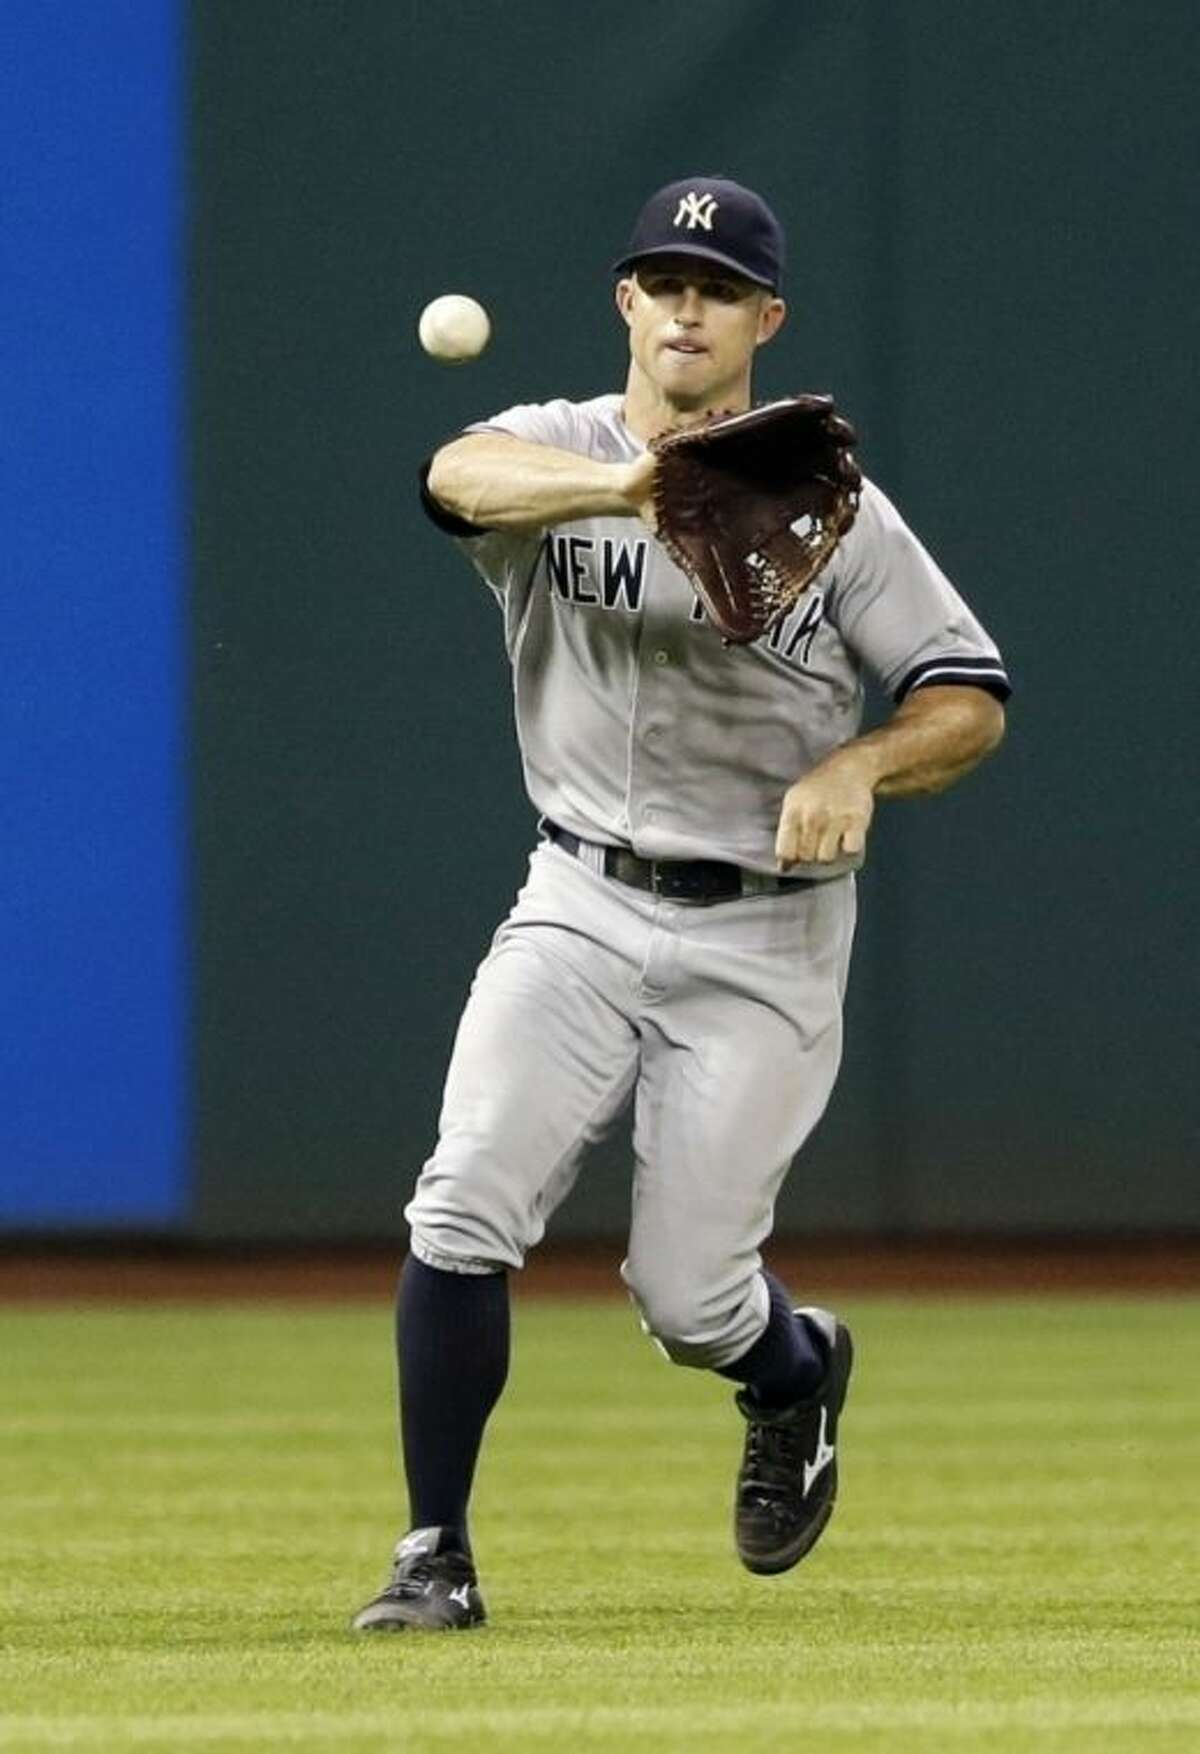 New York Yankees' Brett Gardner fields an RBI single hit by Cleveland Indians' Asdrubal Cabrera in the sixth inning of a baseball game, Monday, July 7, 2014, in Cleveland. Chris Dickerson scored on the play. (AP Photo/Tony Dejak)